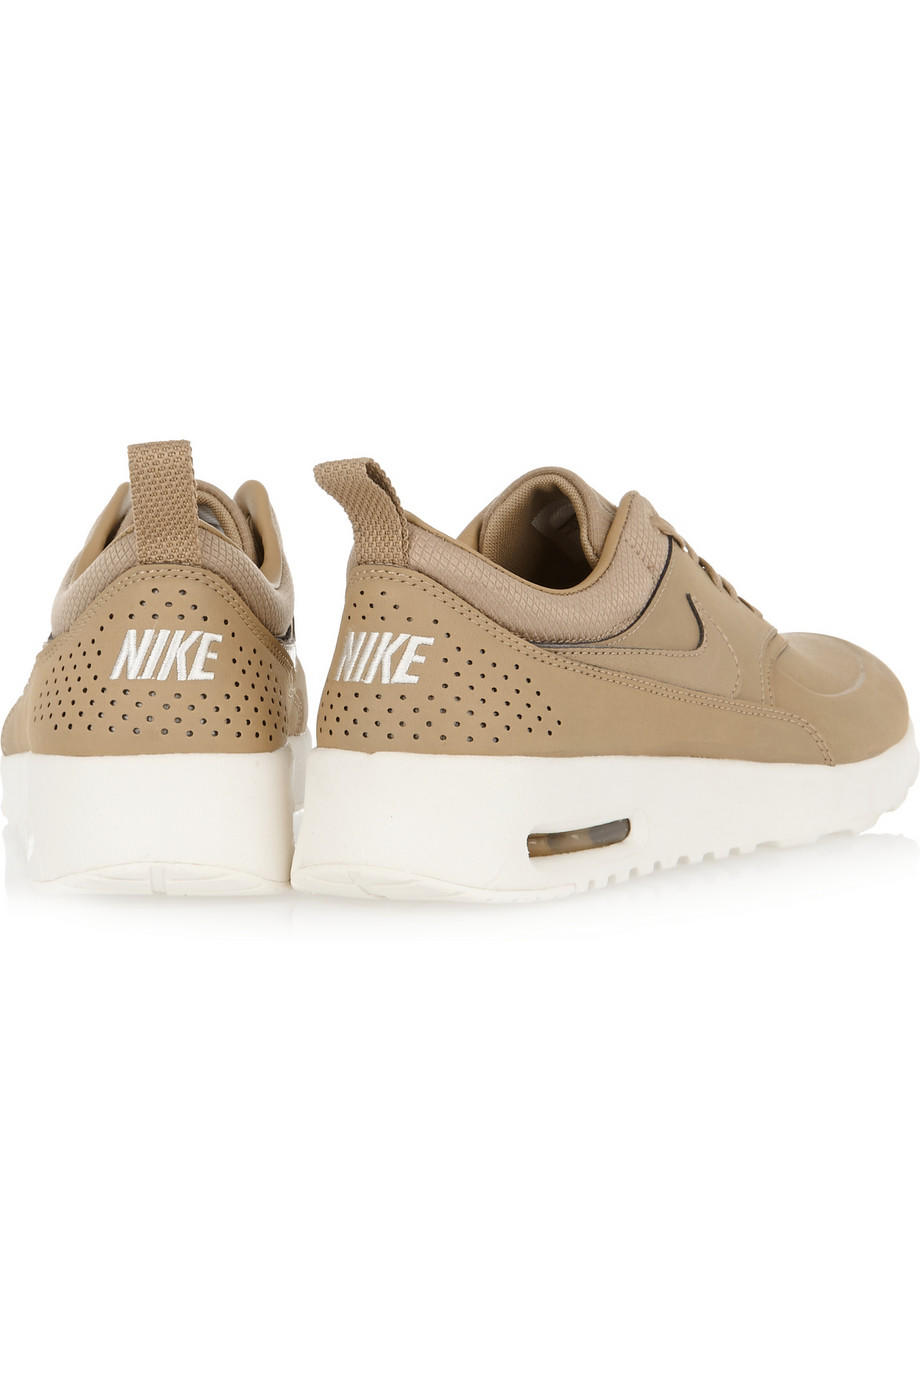 Nike - Air Max Thea leather sneakers from NET-A-PORTER  26452fe18f